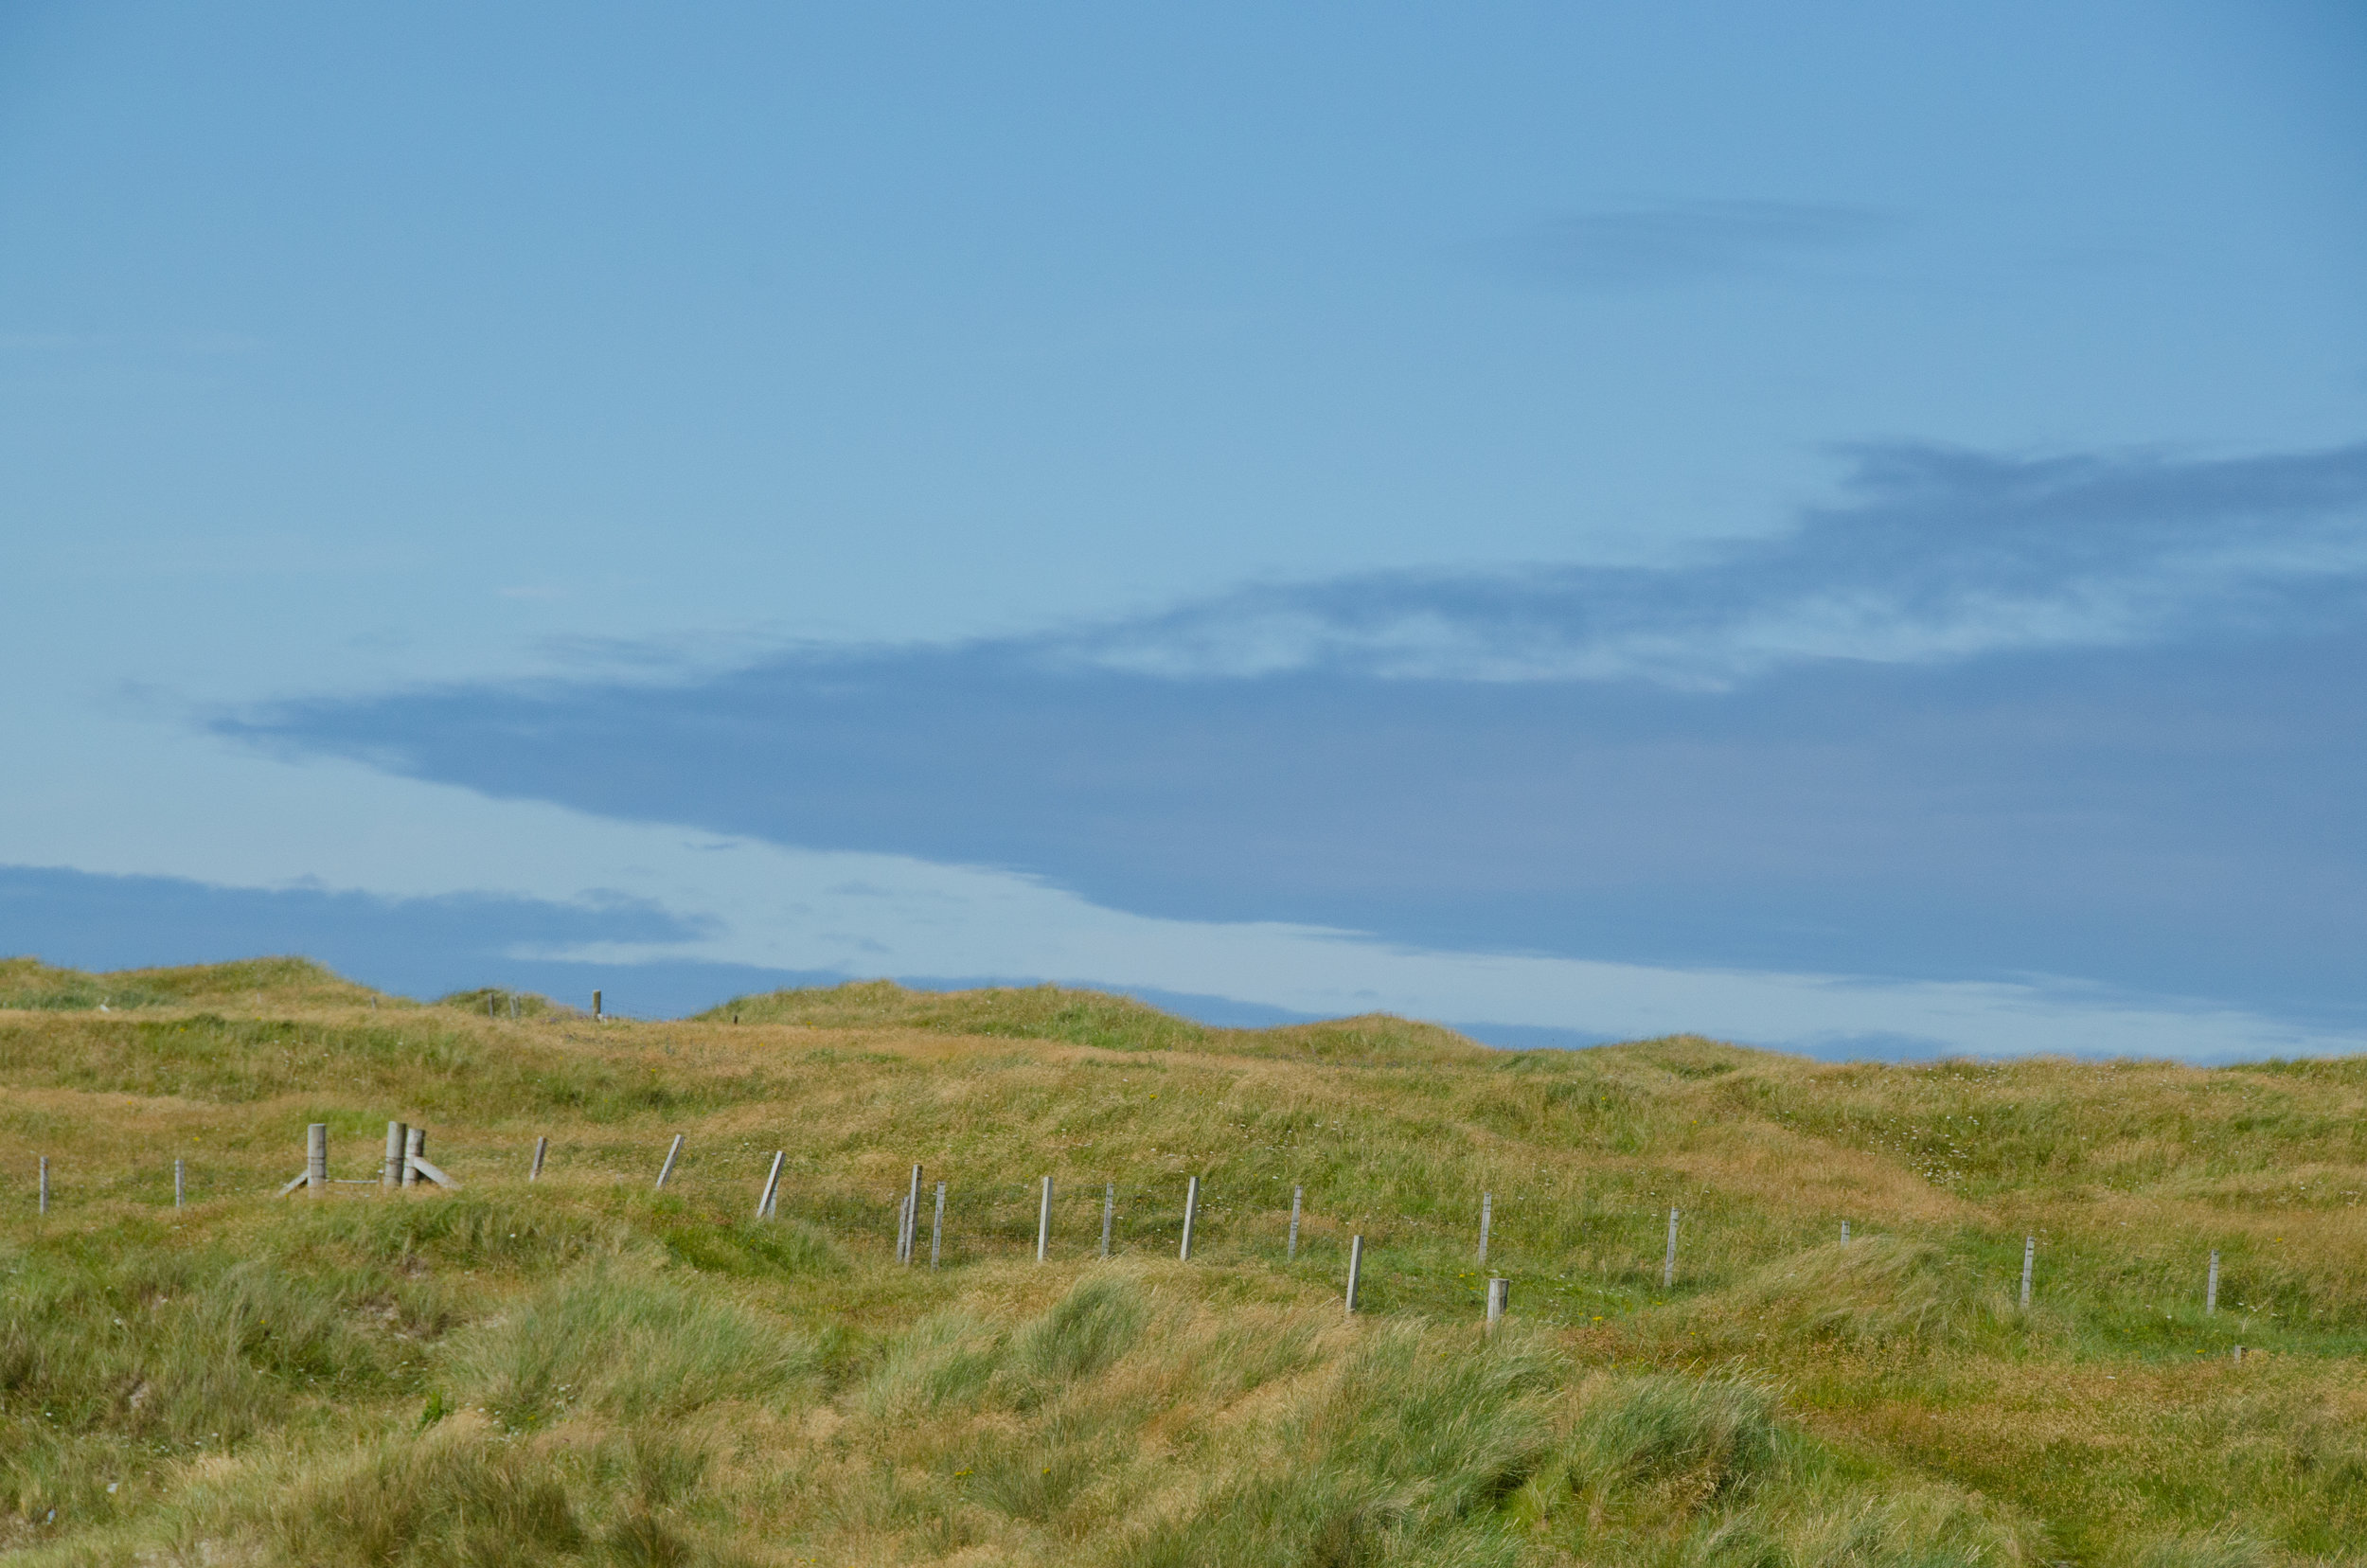 Blue skies above the sand dunes